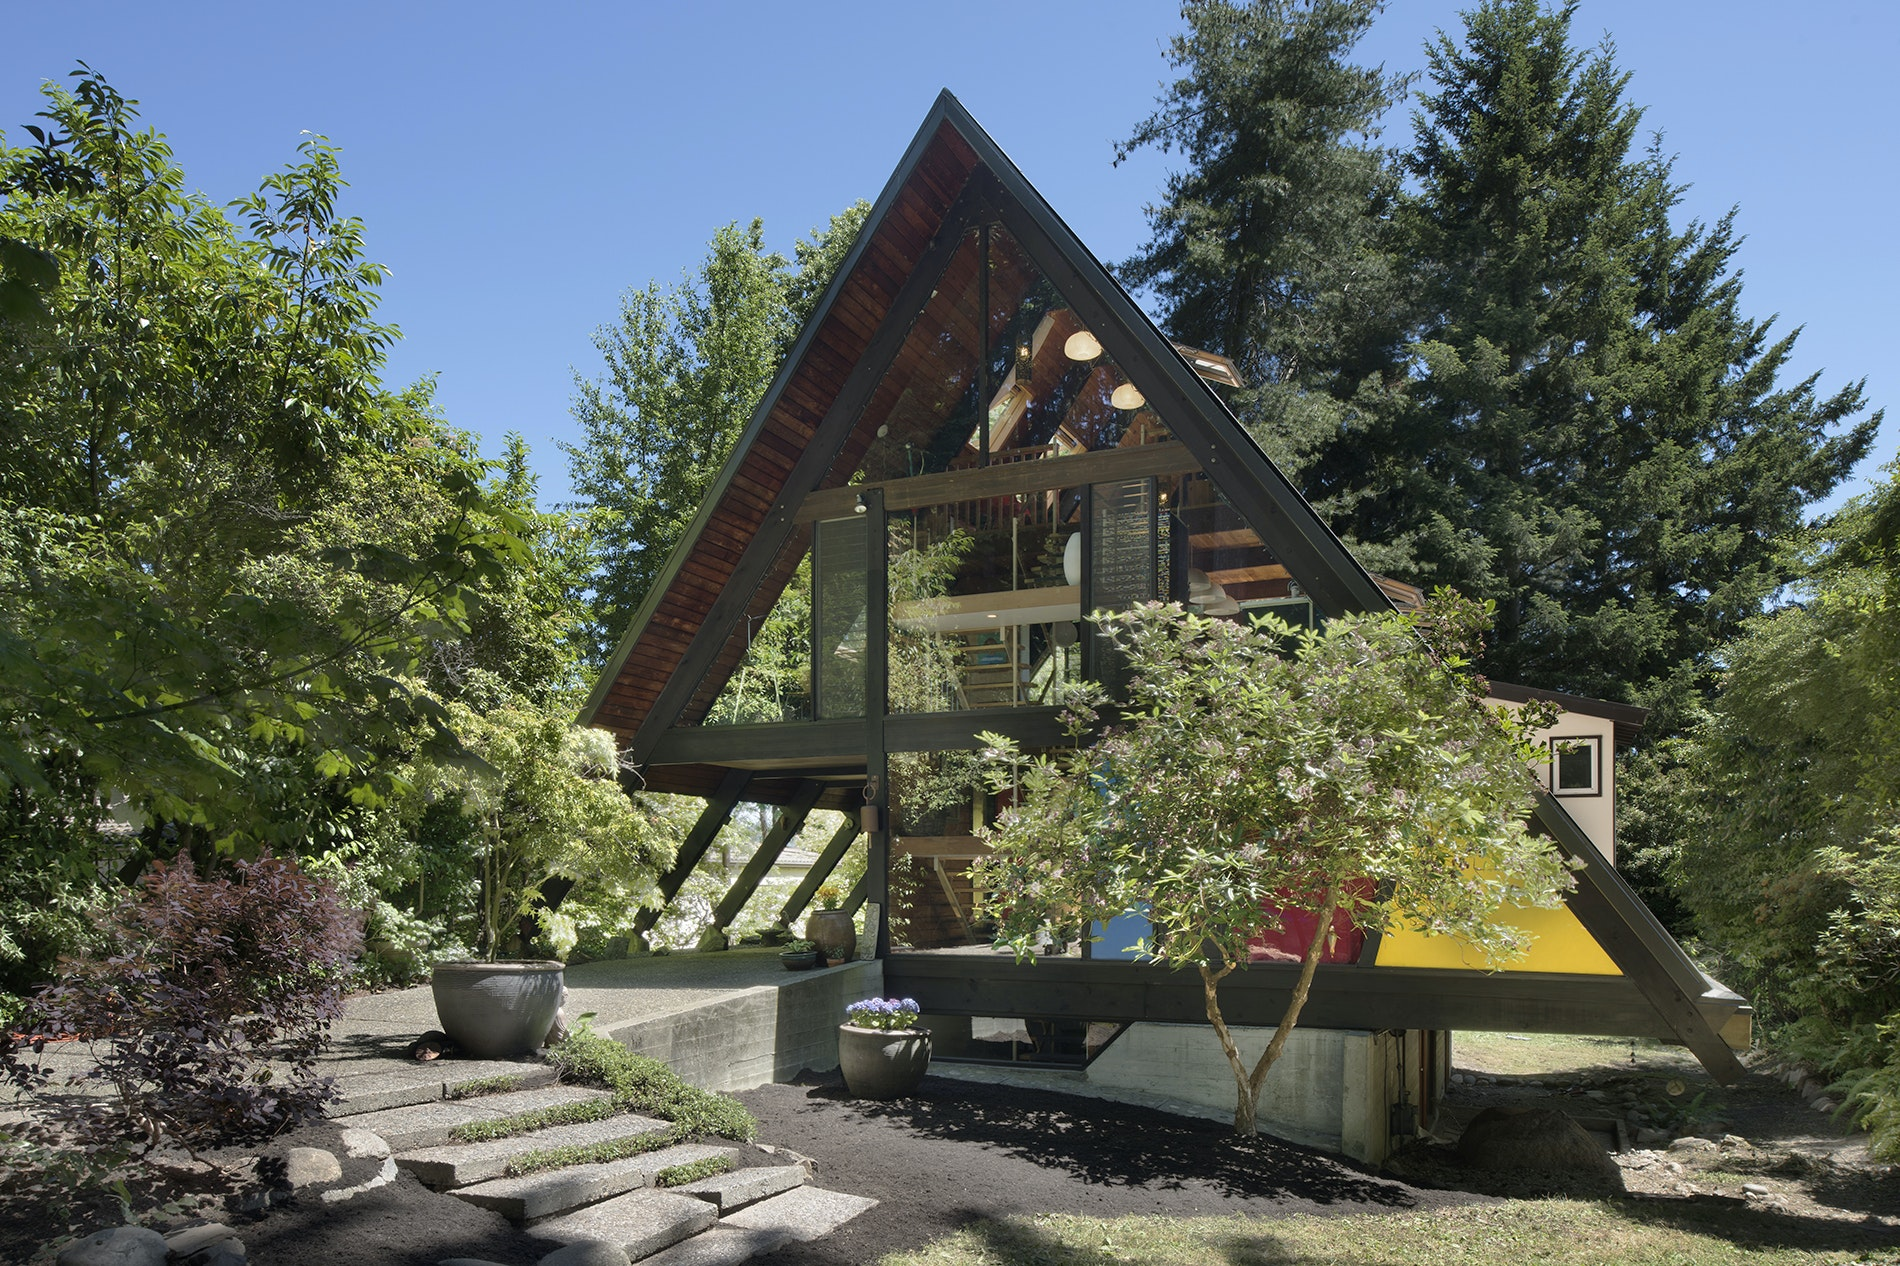 This midcentury modern A-frame house was designed by architect Wendell Lovett and comes tucked into Seattle's quiet Matthews Beach neighborhood.